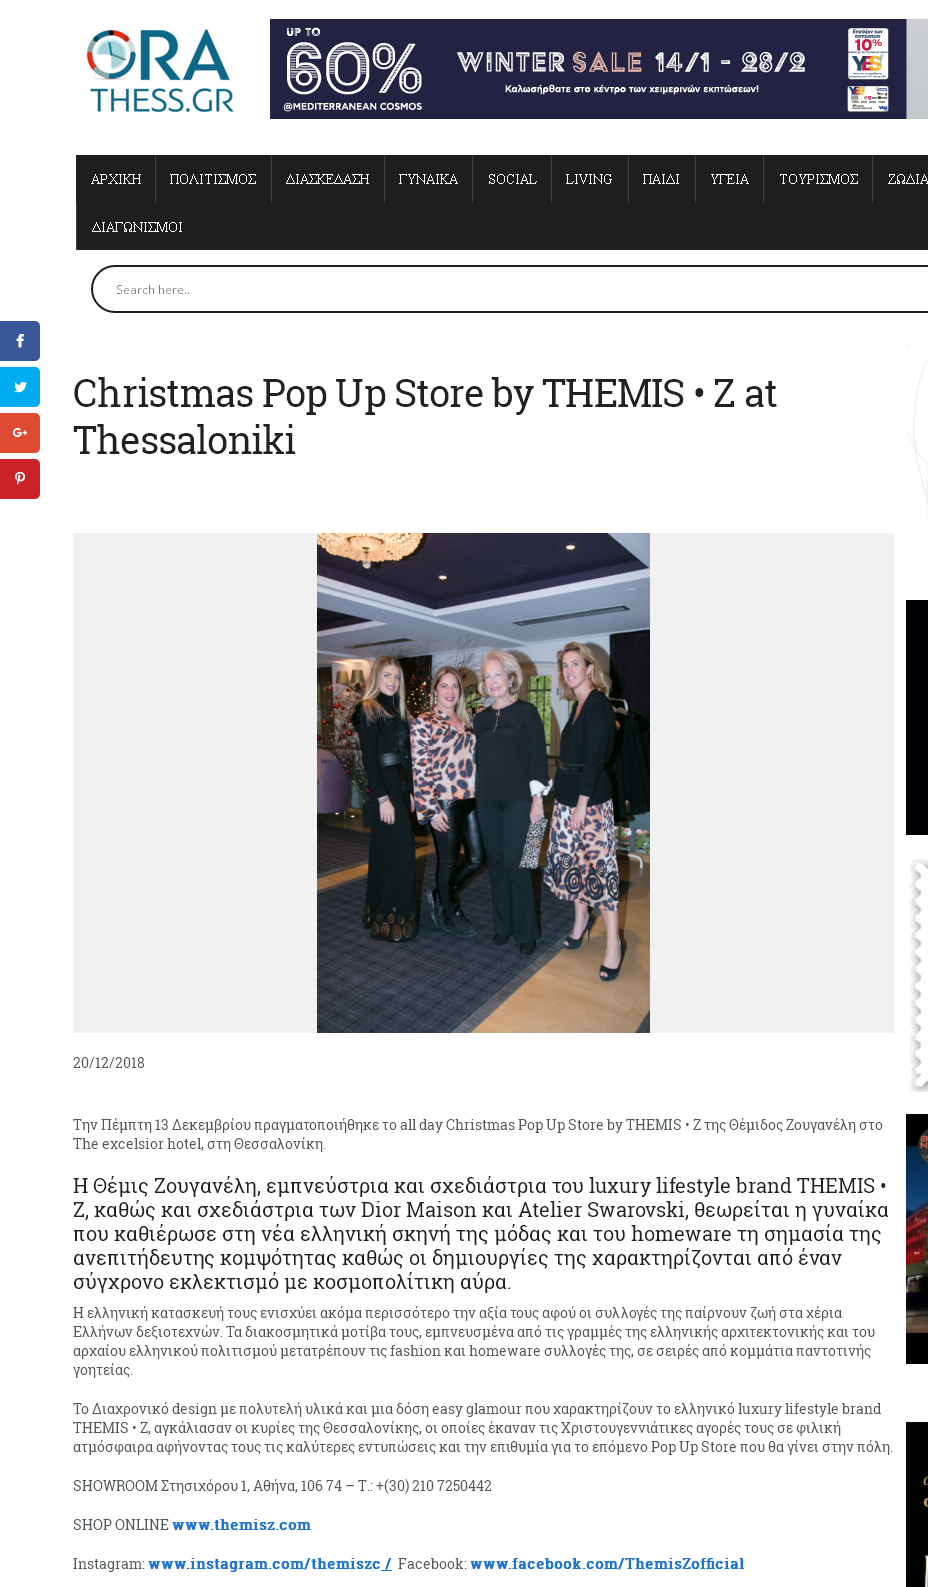 THEMIS-Z Christmas Pop Up Store